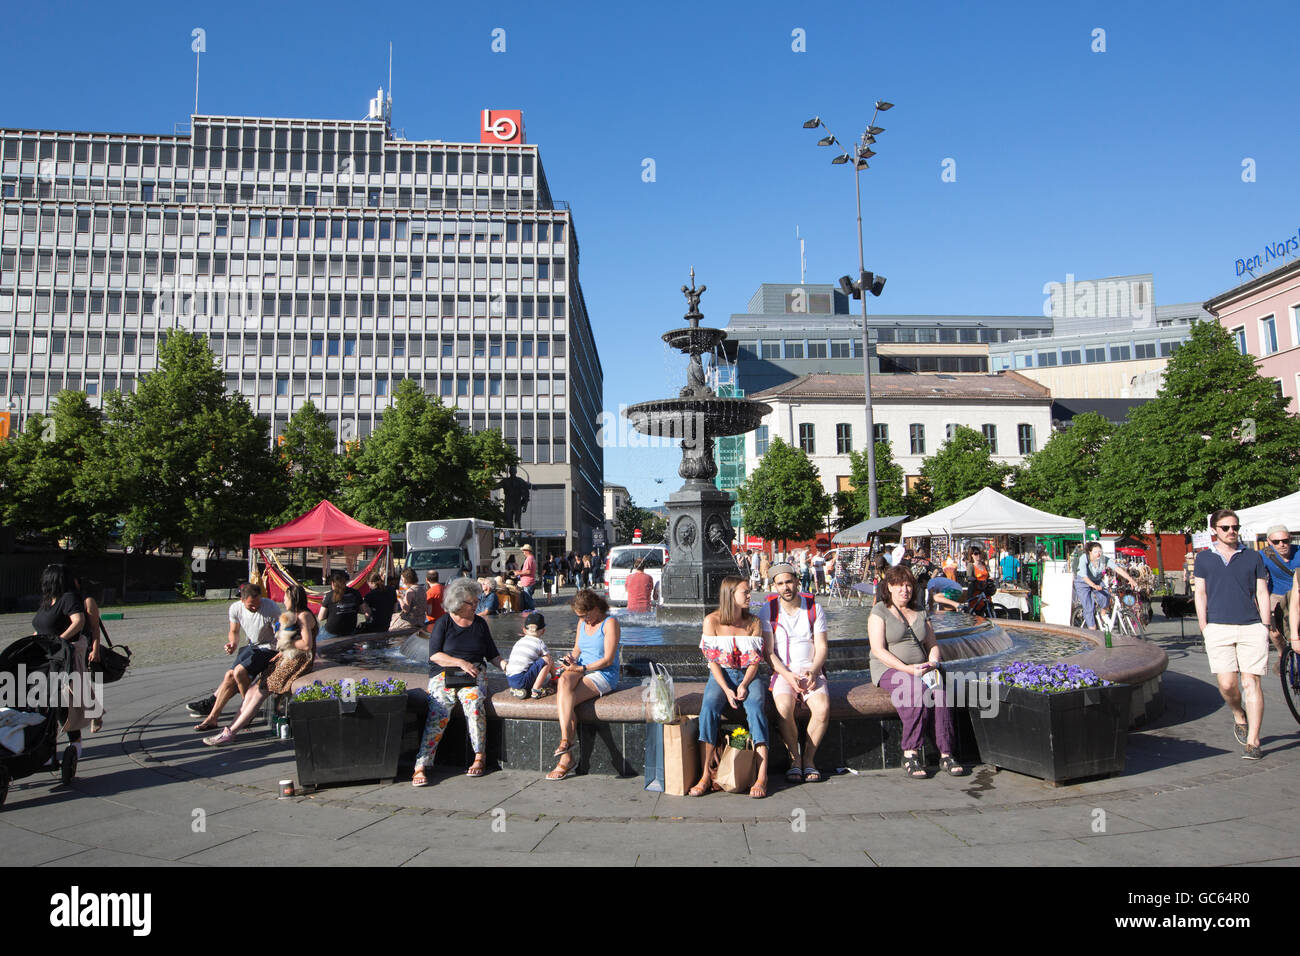 Youngstoget Square, Oslo Sentrum, Oslo, Norway - Stock Image